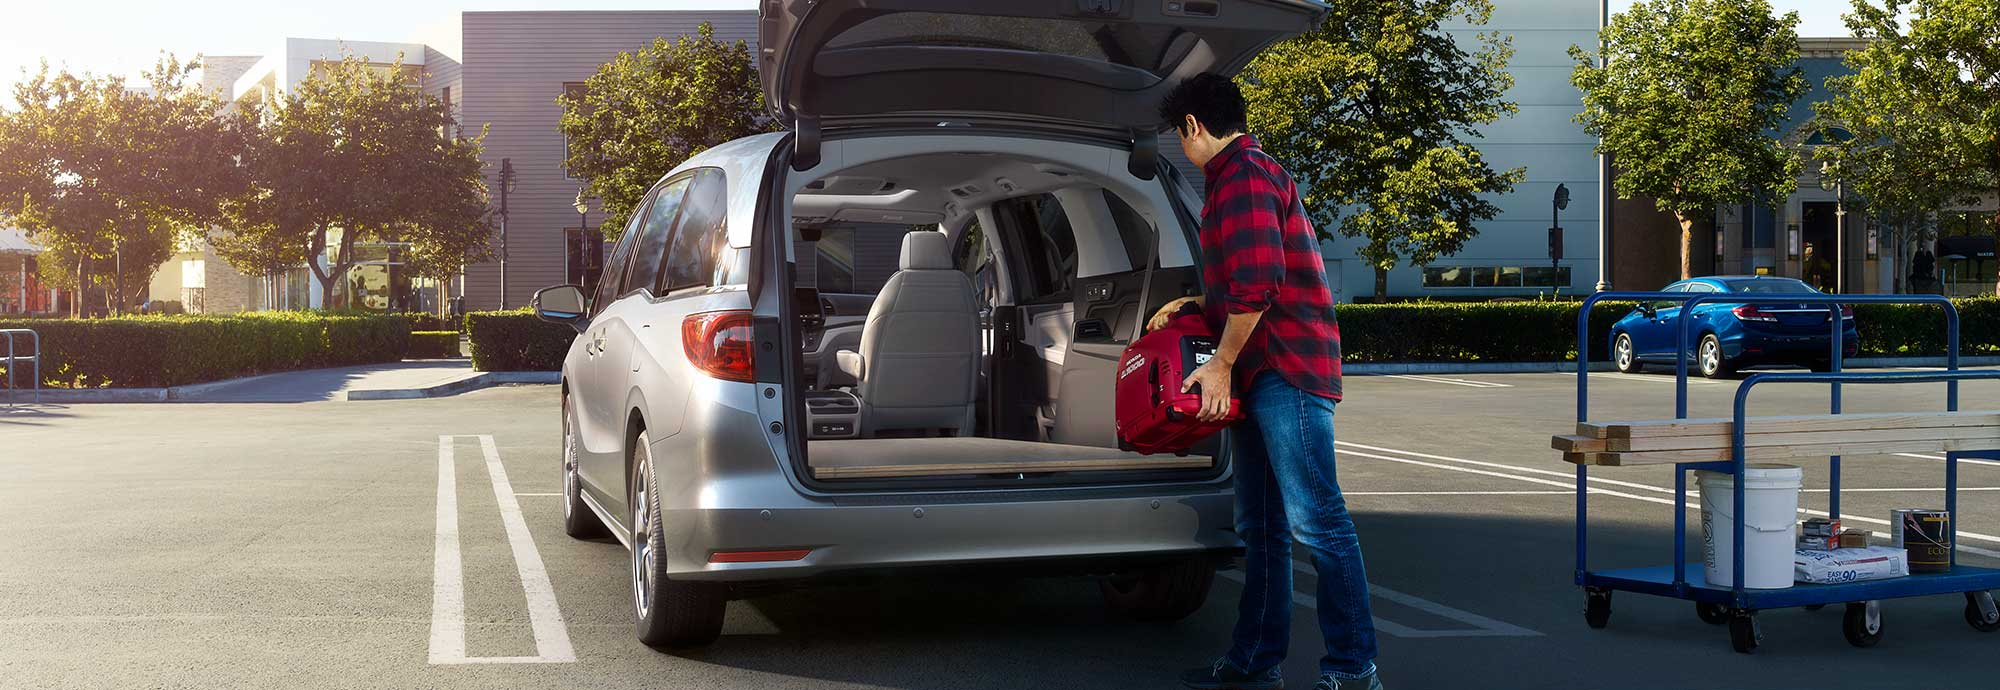 2021 Honda Odyssey with trunk open